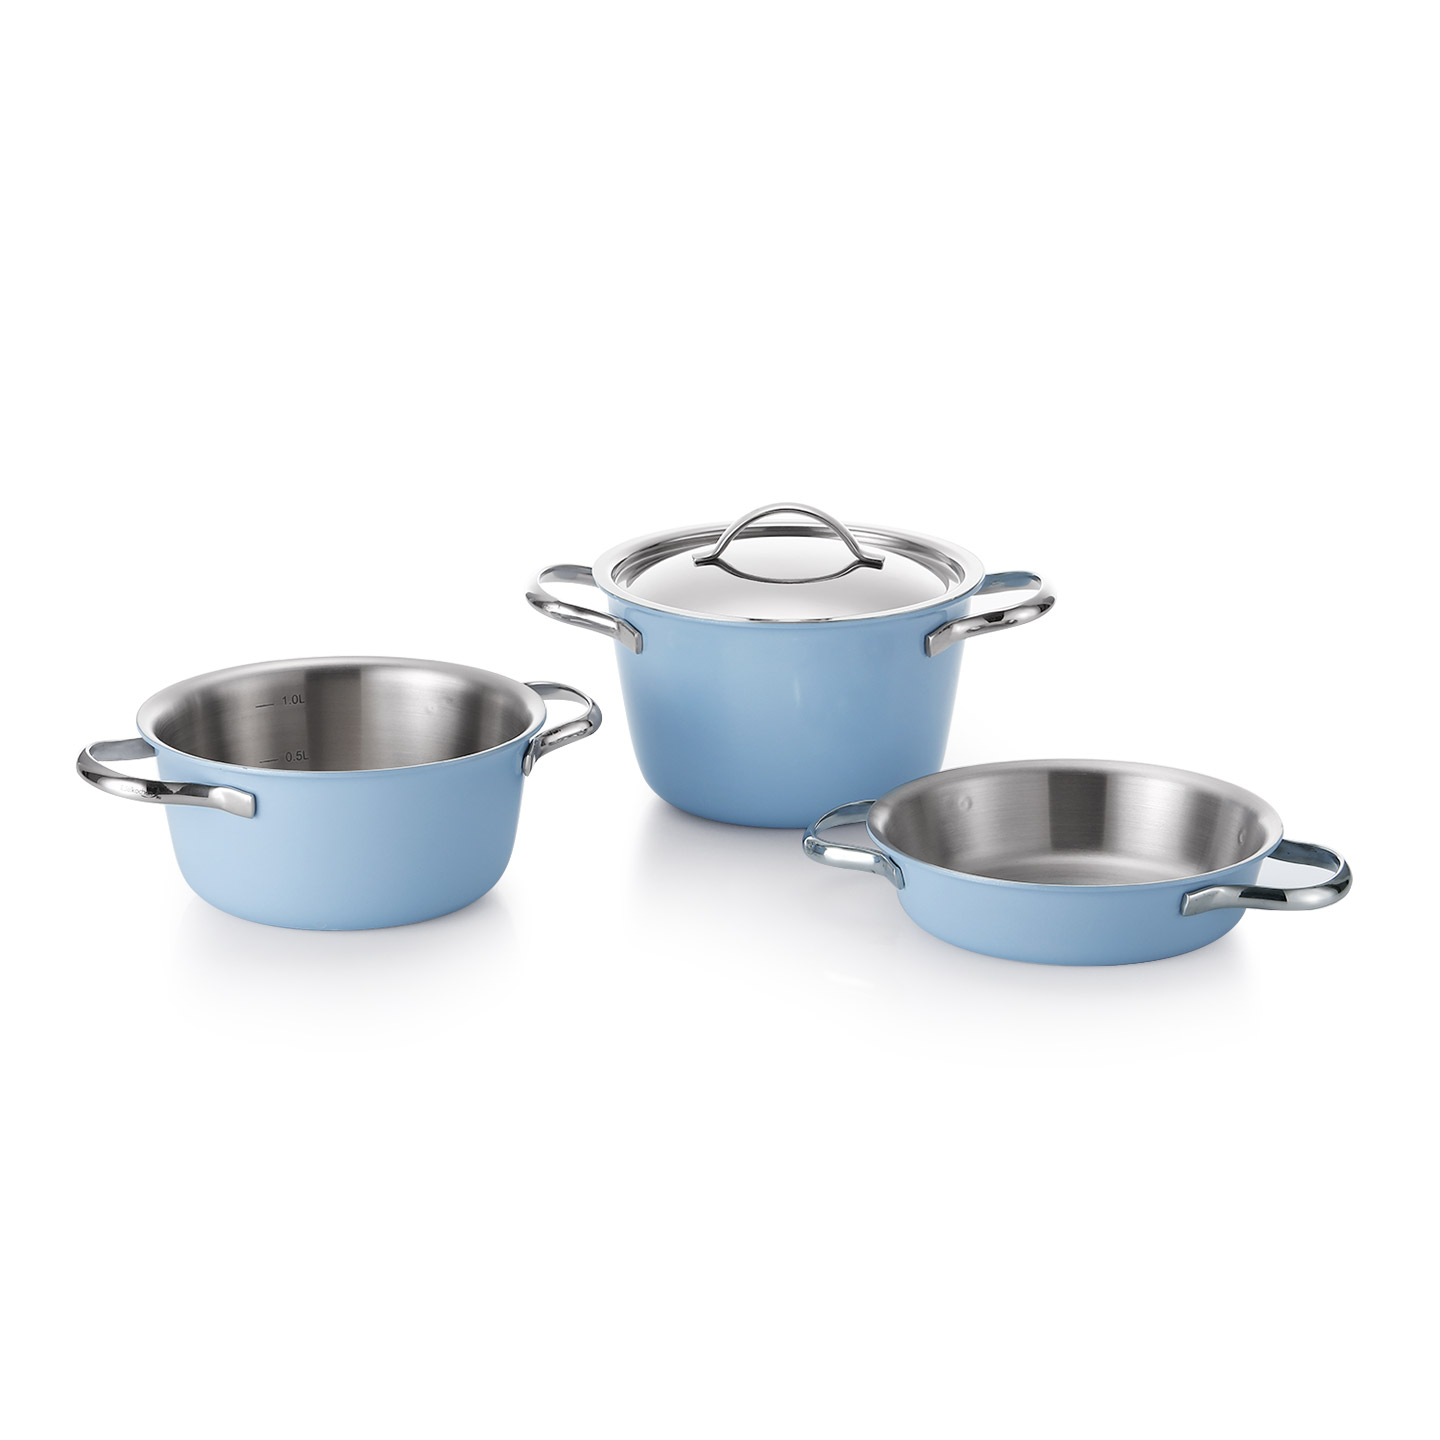 Edelkochen mini set - edel blue